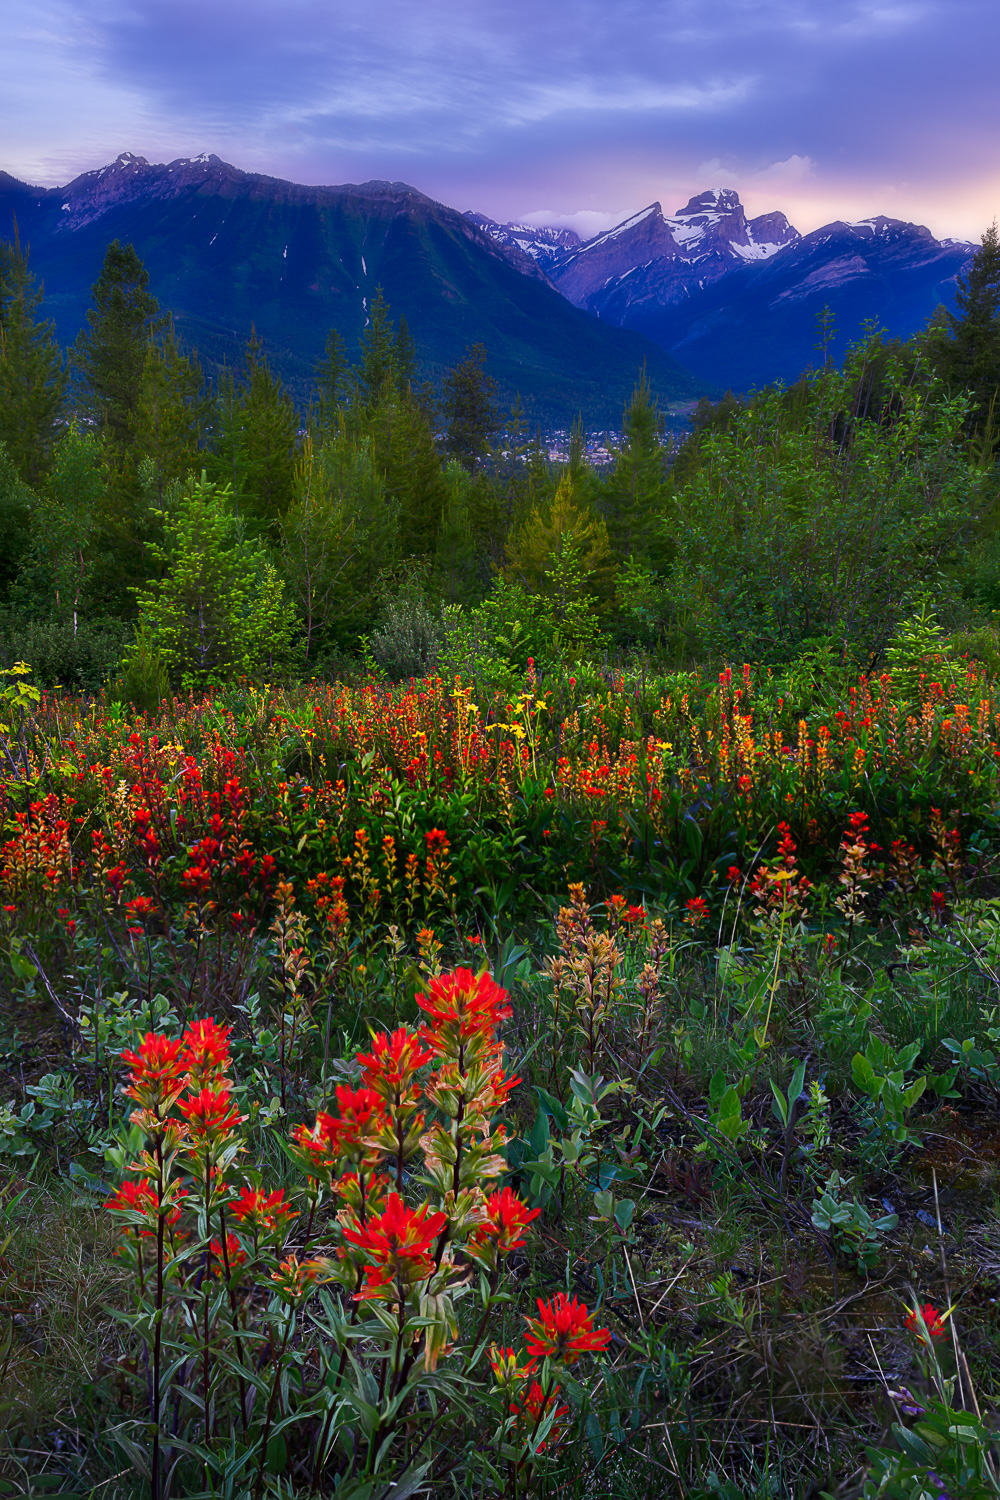 #2 - Fernie Wildflowers